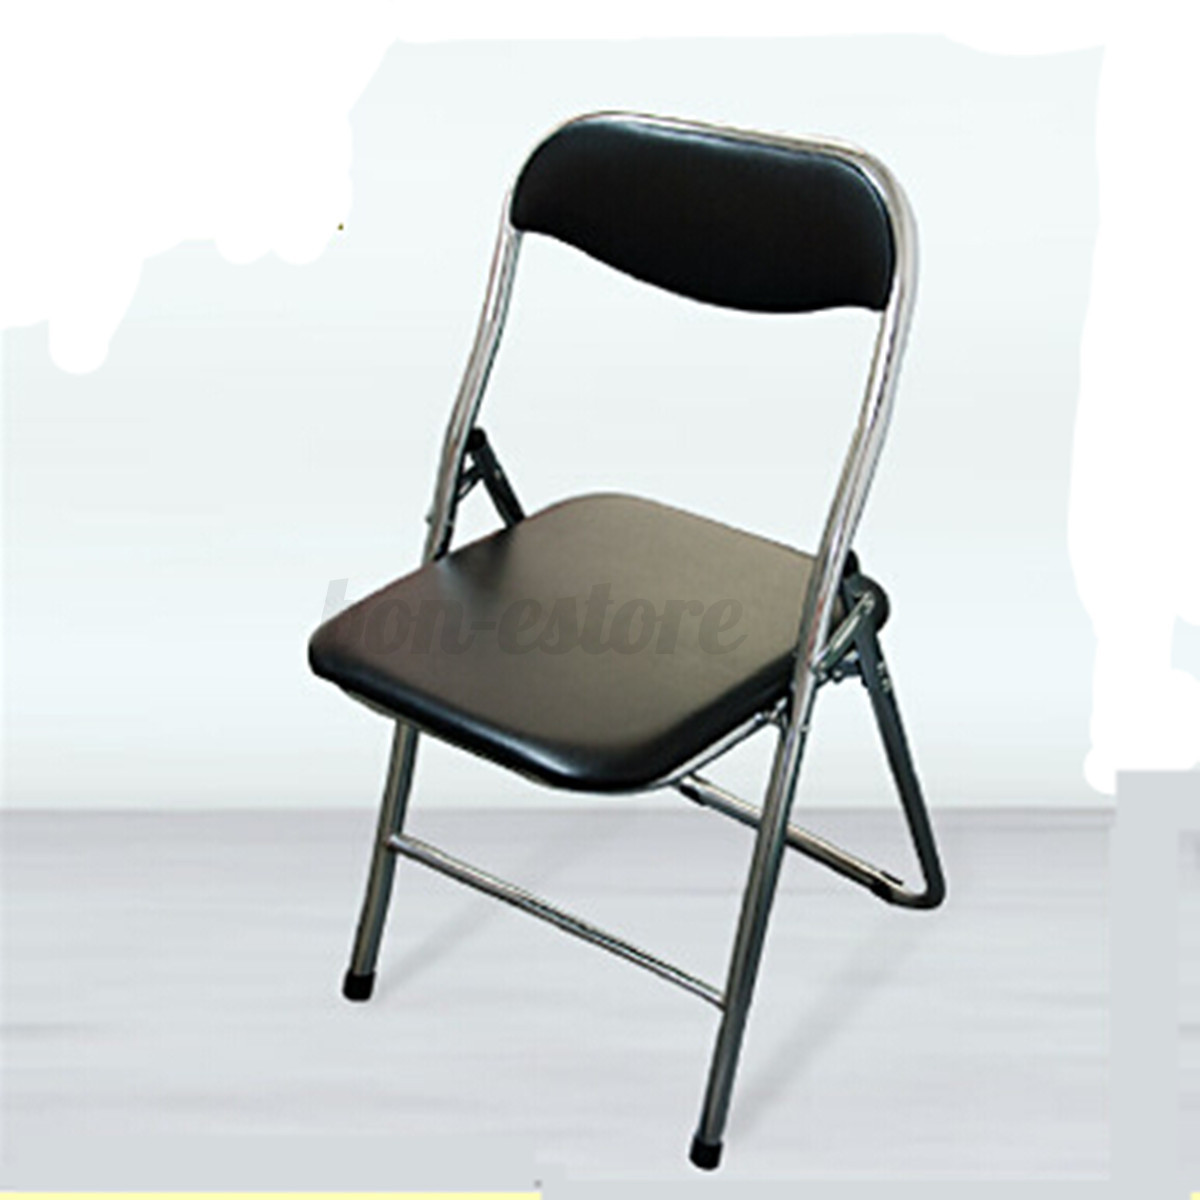 Soft Folding Chairs Folding Chair Black Portable Soft Advanced Leather Smooth